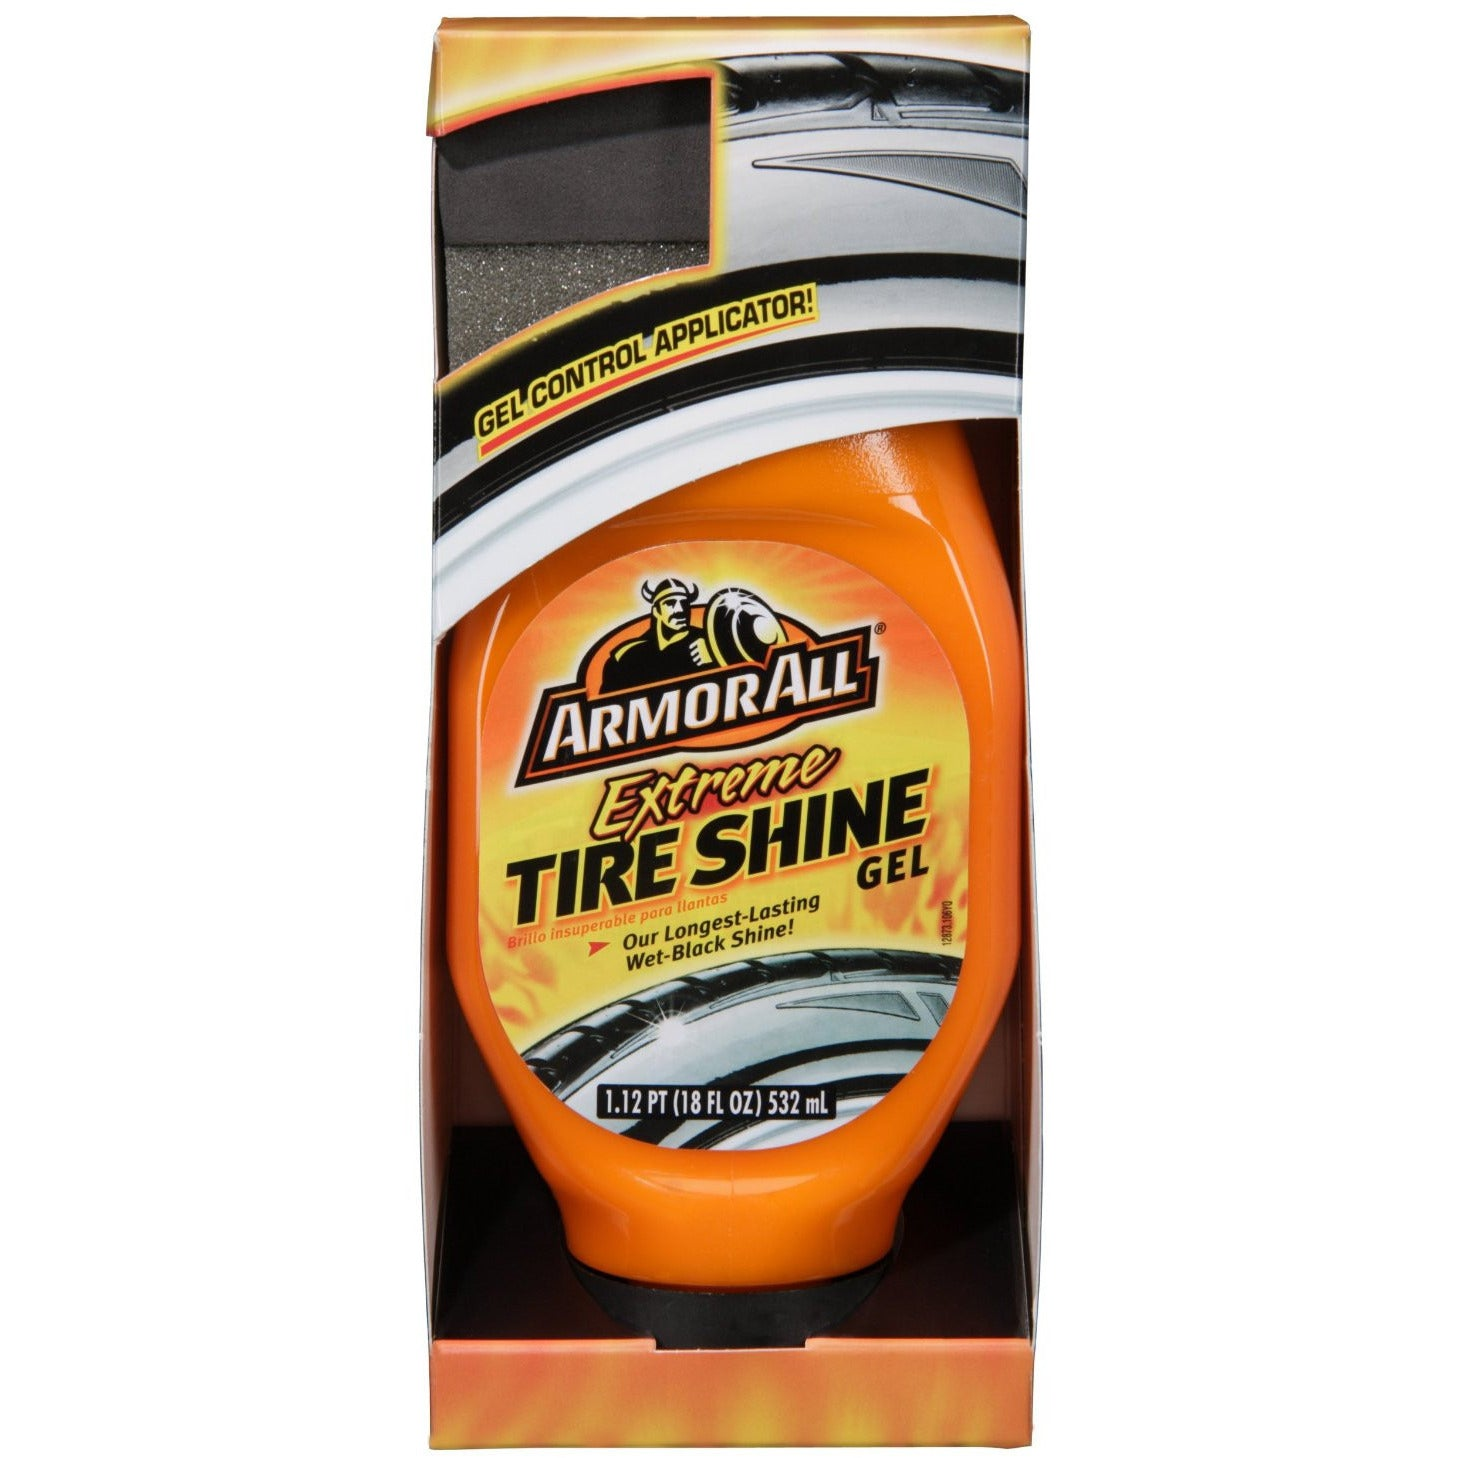 ARMORALL Extreme Tire Shine Gel with Applicator (532 ML)